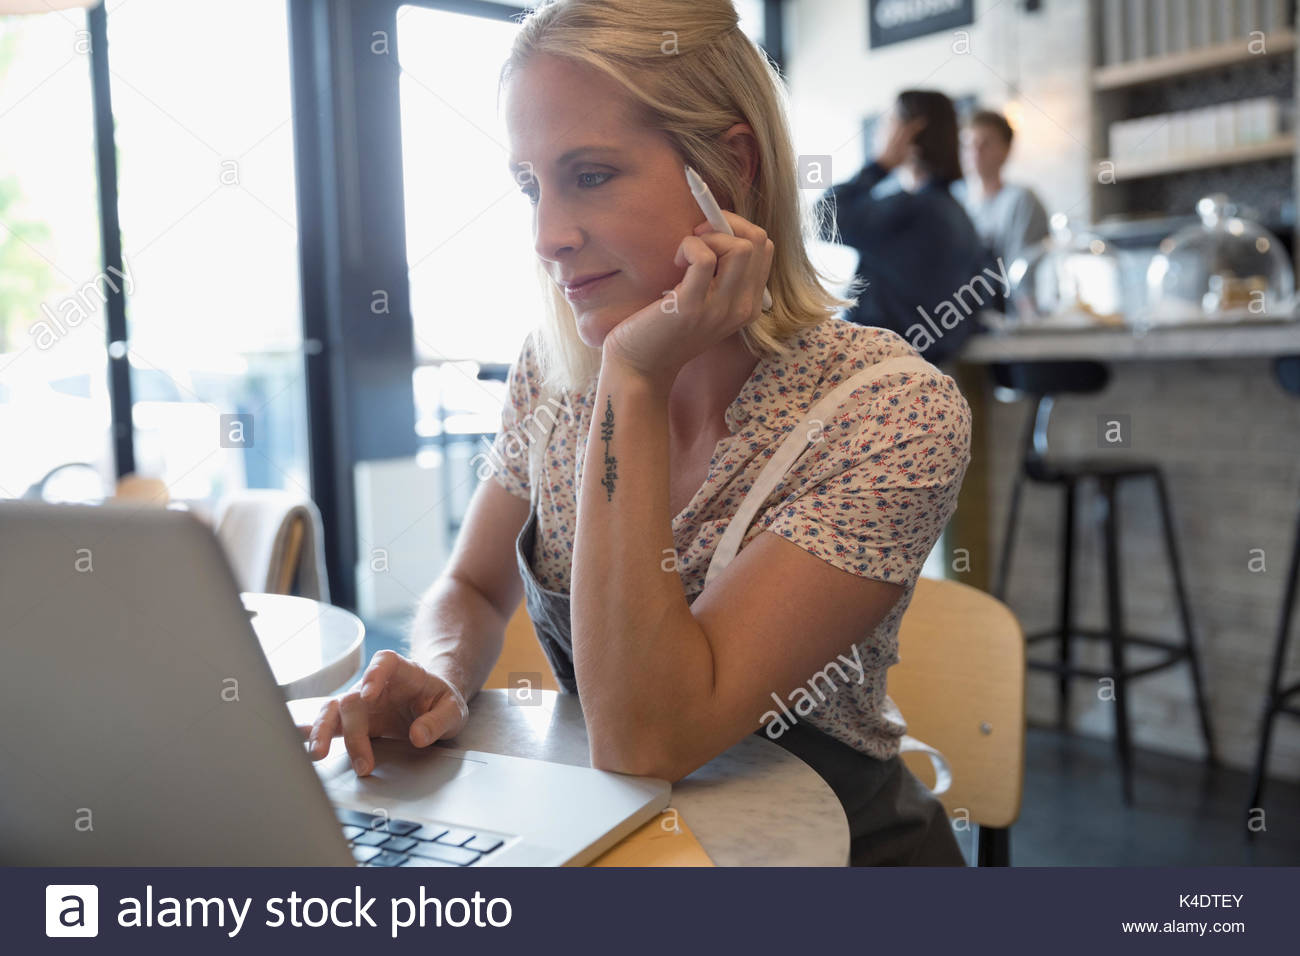 Female cafe owner working at laptop - Stock Image